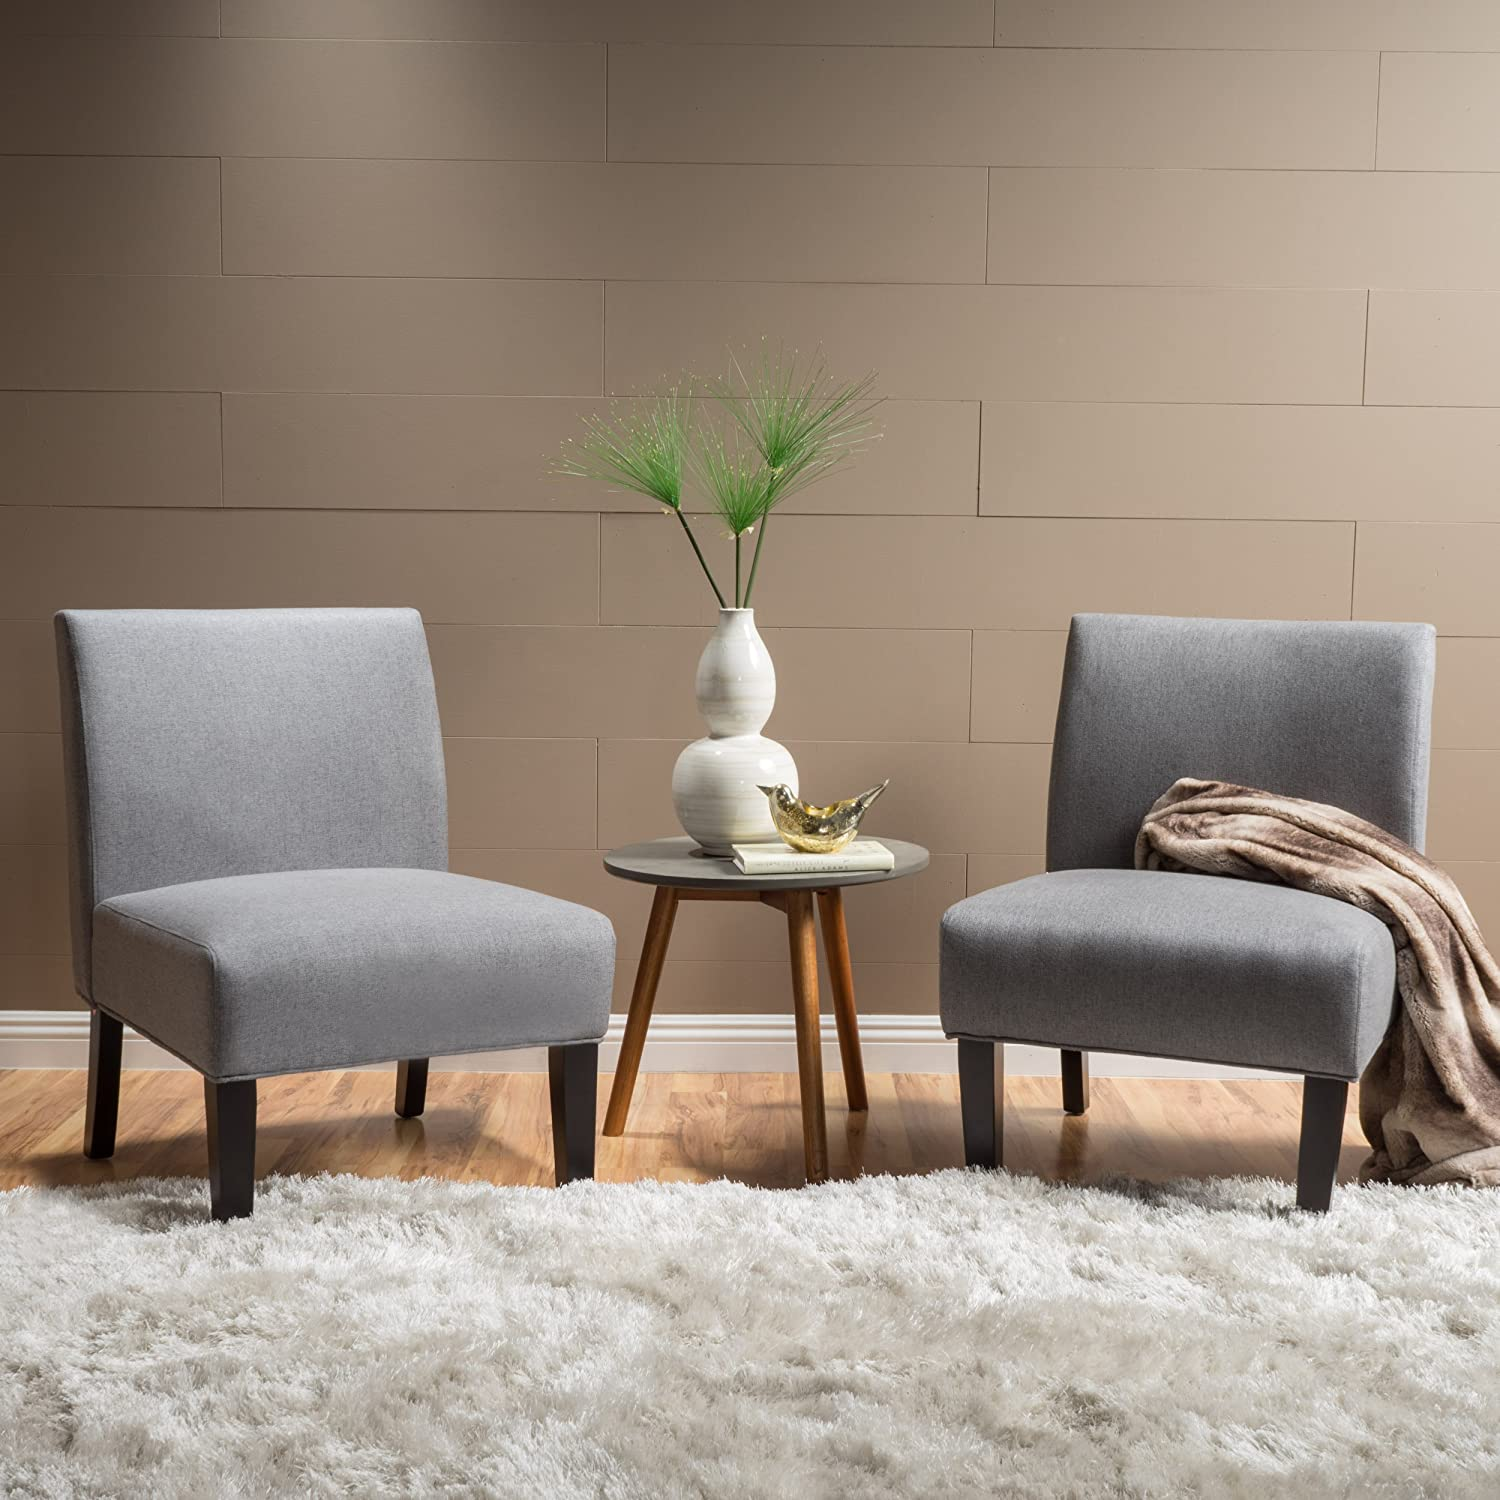 Amazon Com Christopher Knight Home Kendal Grey Fabric Accent Chair Set Of 2 Two Home Kitchen